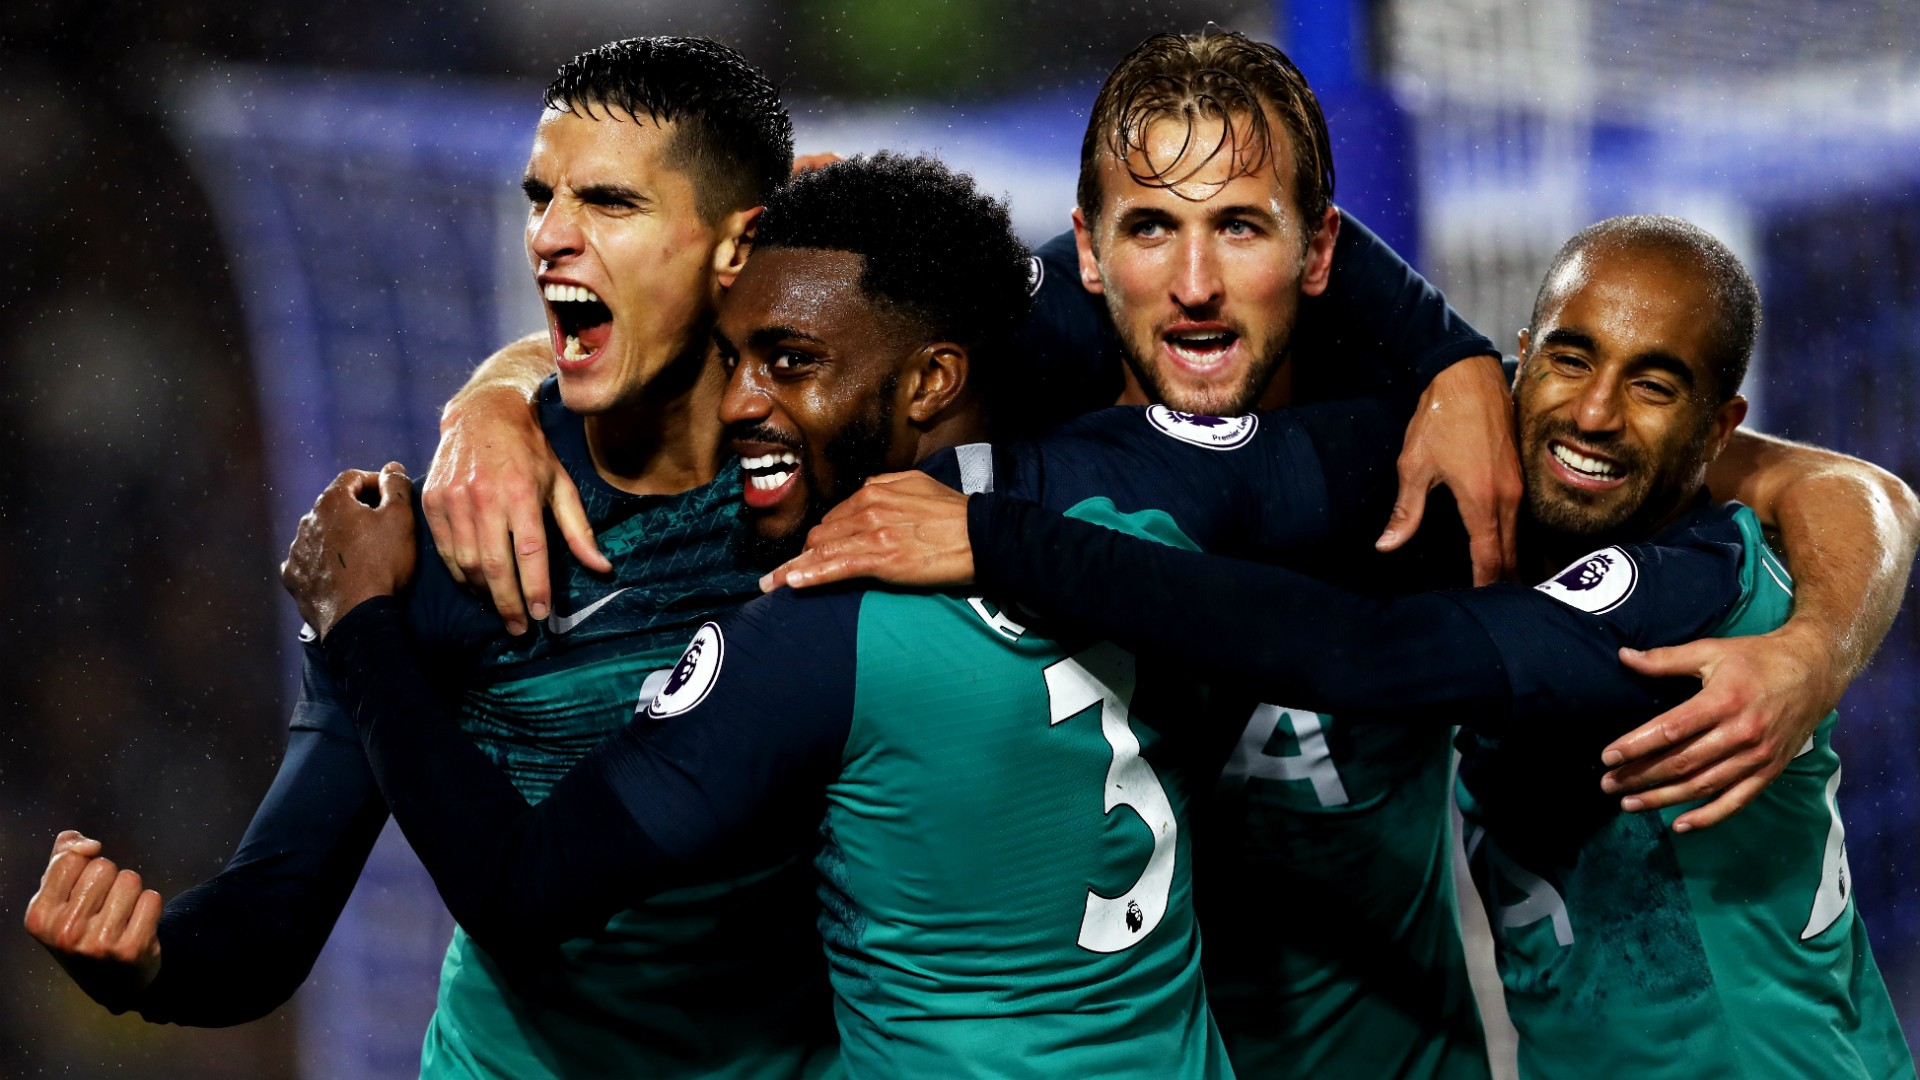 BPL (2018-2019) Report: Brighton and Hove Albion 1 Tottenham 2 - Kane on target as Spurs issue firm response